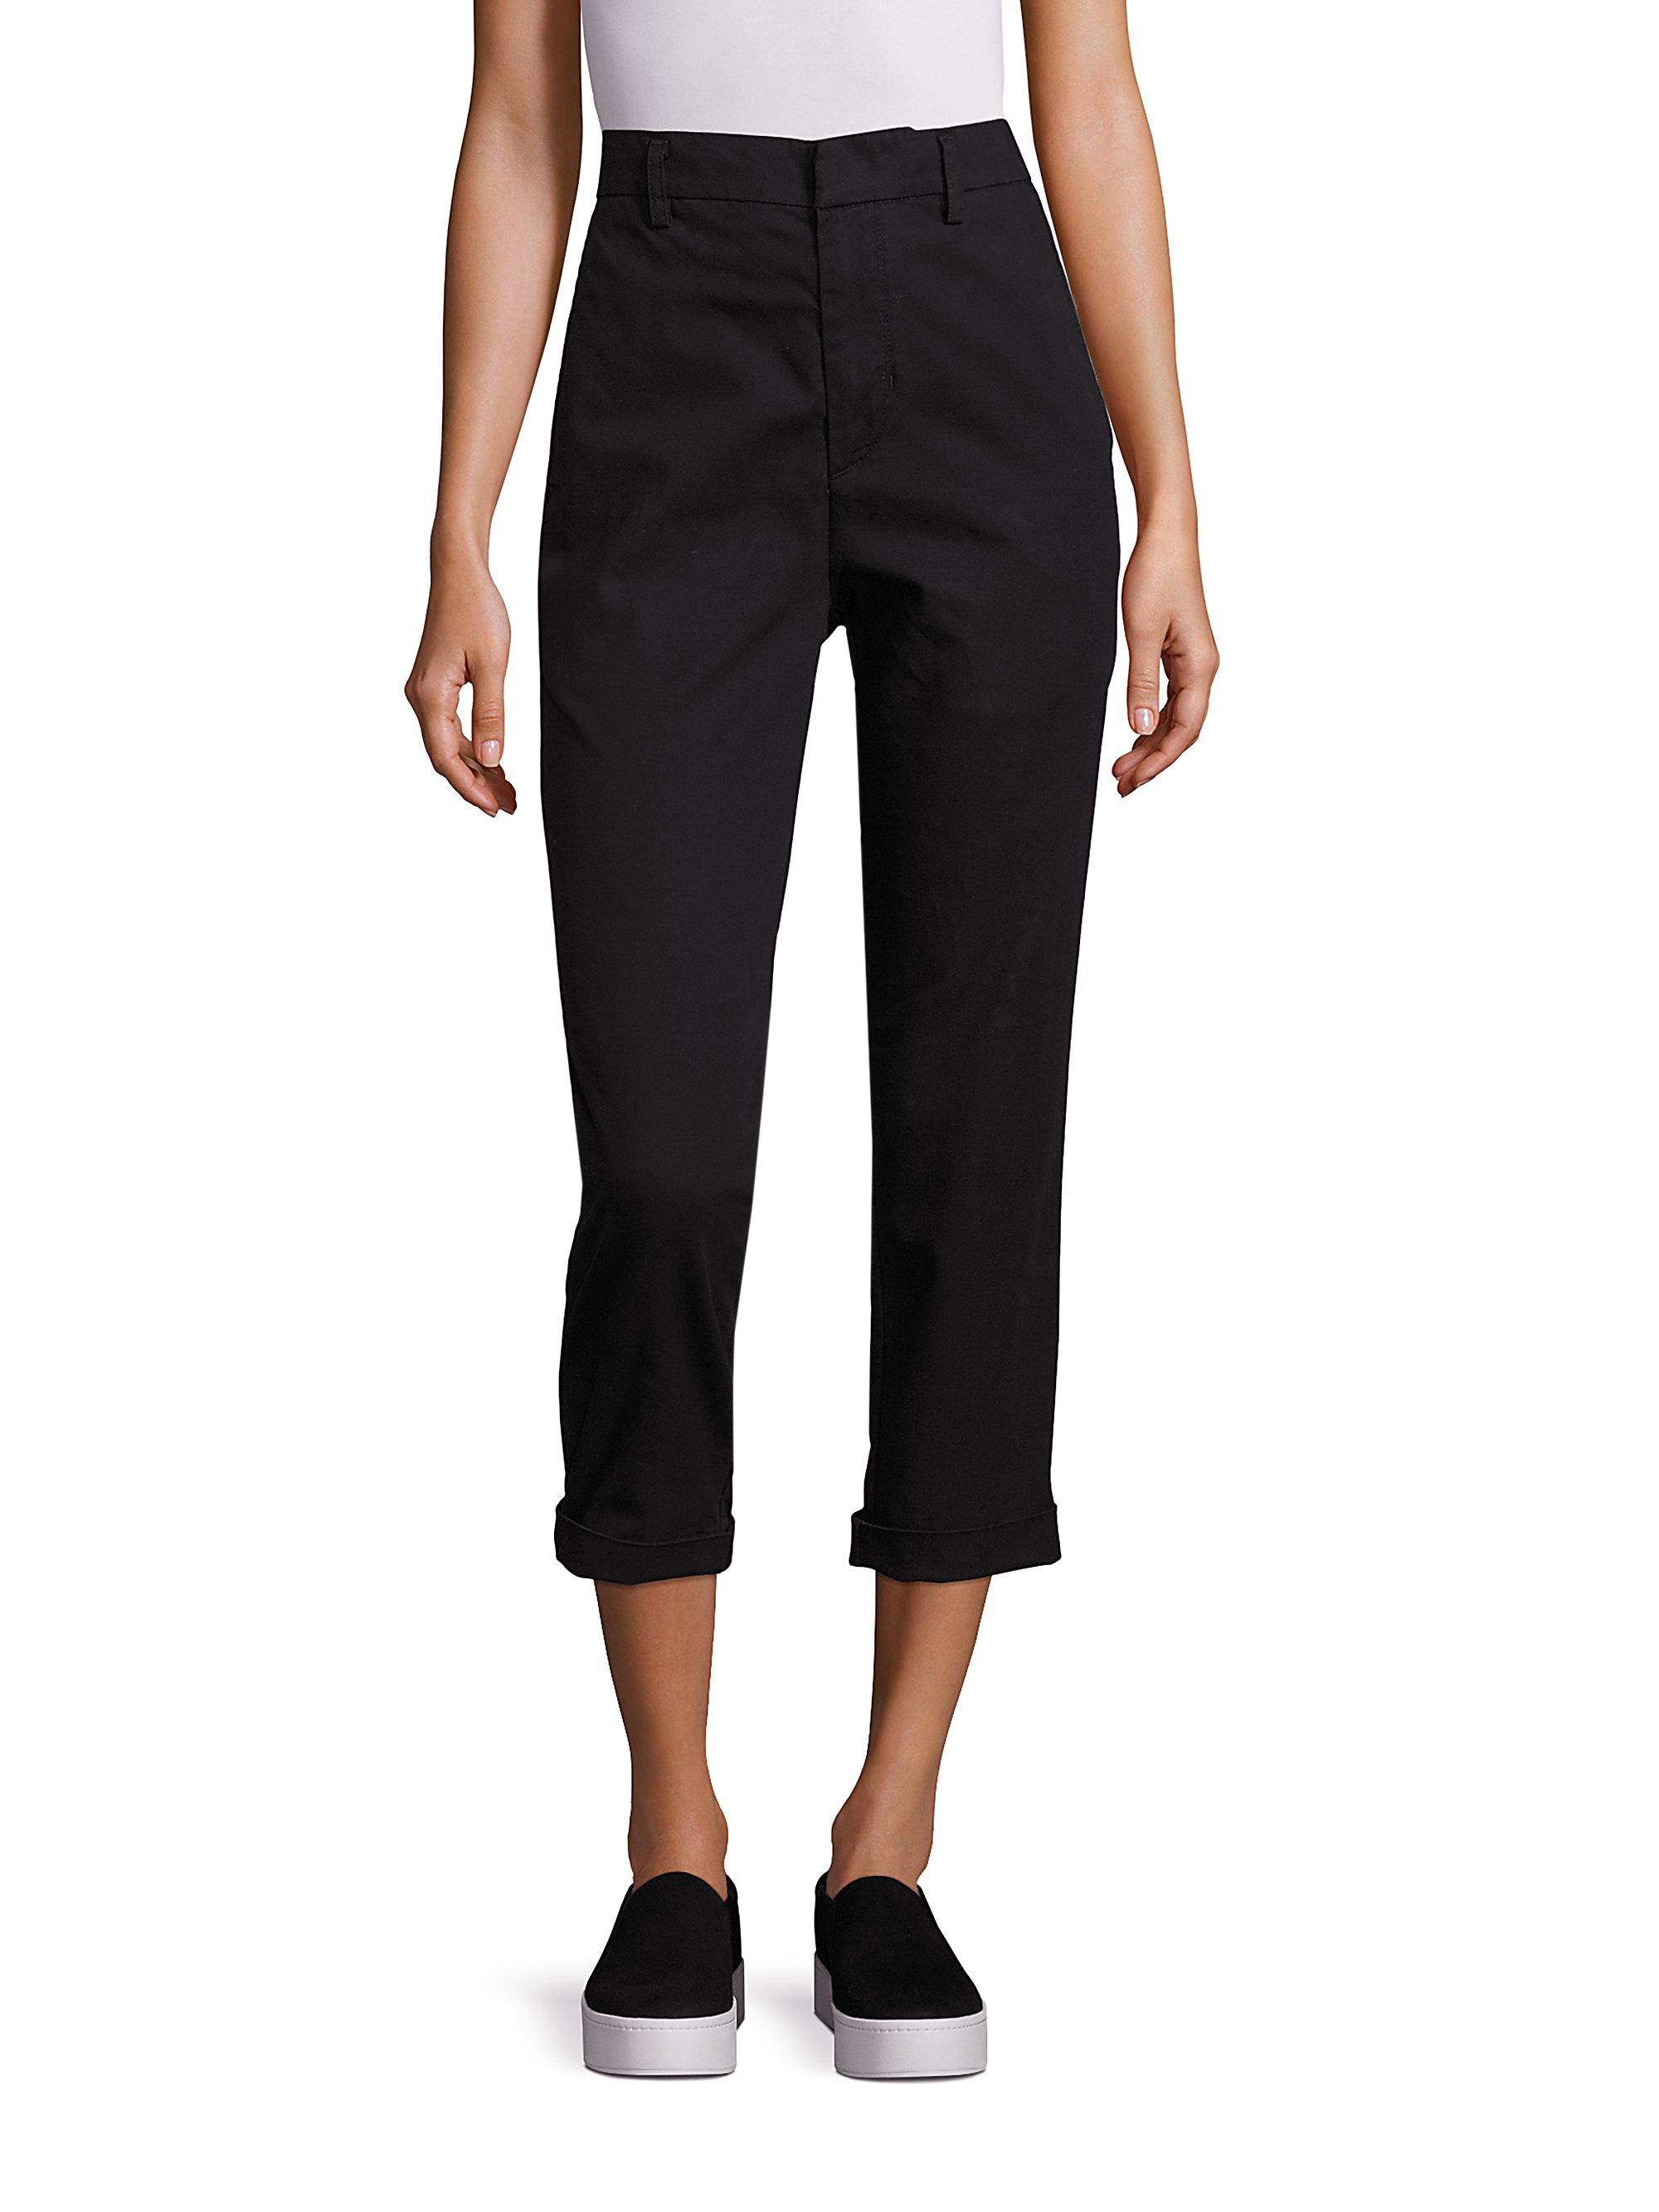 Brilliant Sexy Women39s Chino Style Cuffed Ladies Trousers Pants Black Pants Size